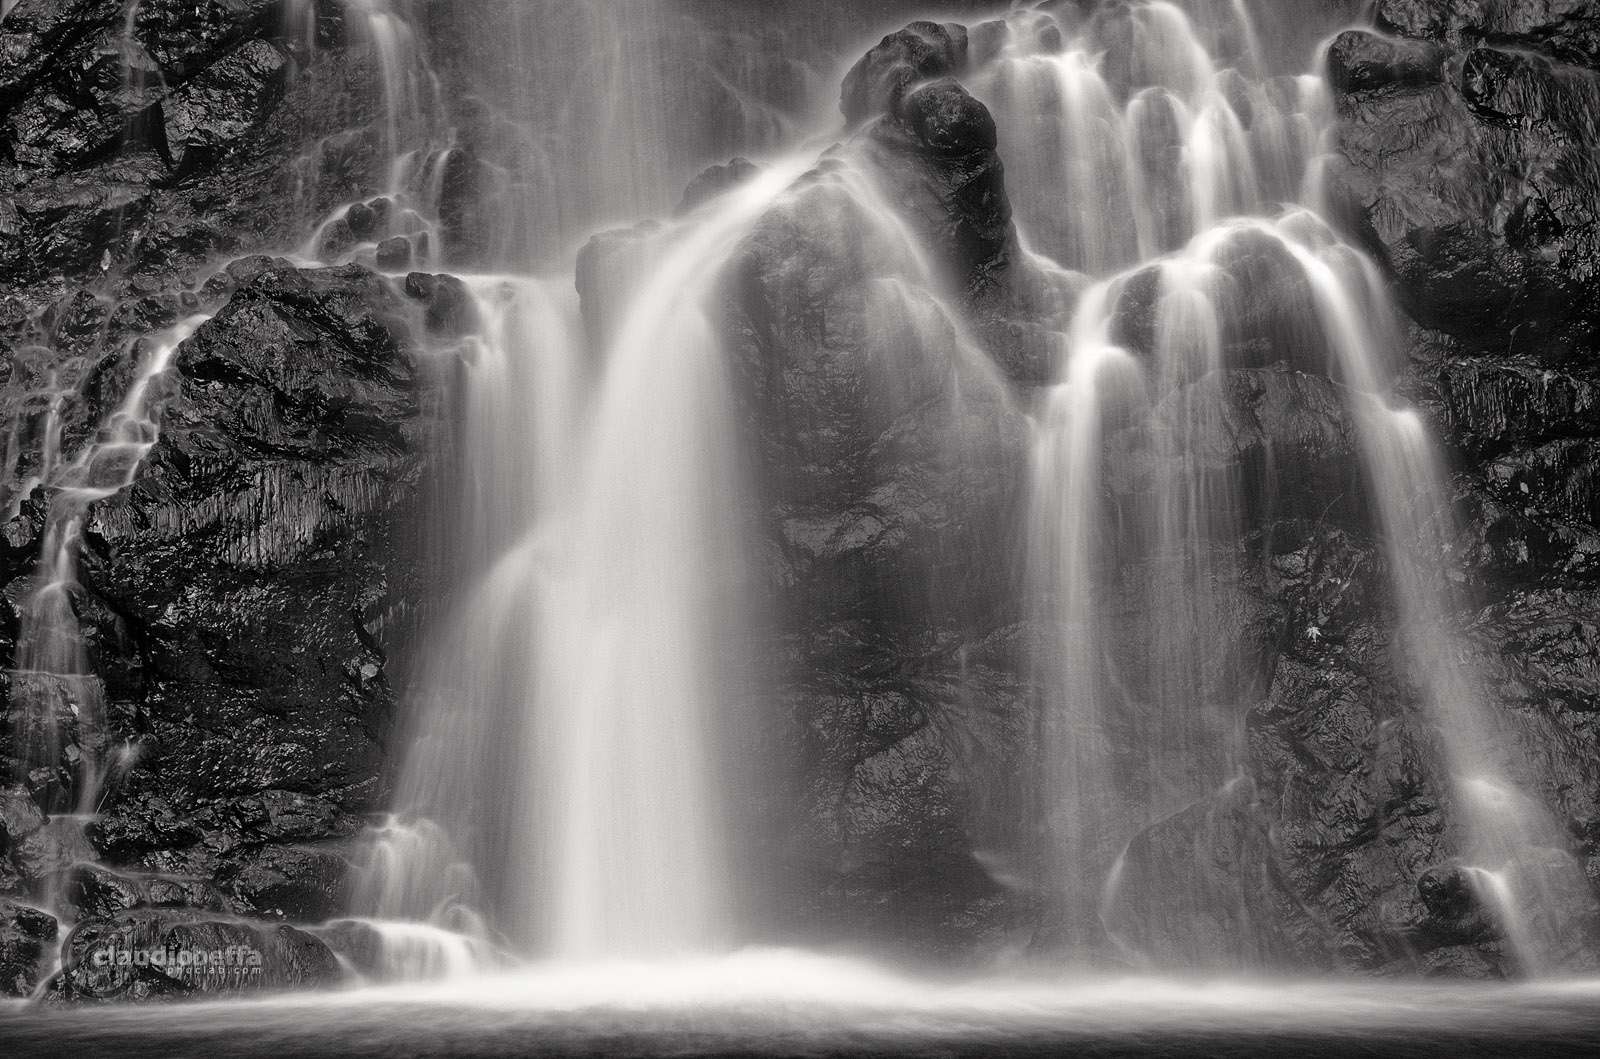 Minoh Waterfalls Osaka Japan Long exposure B&W